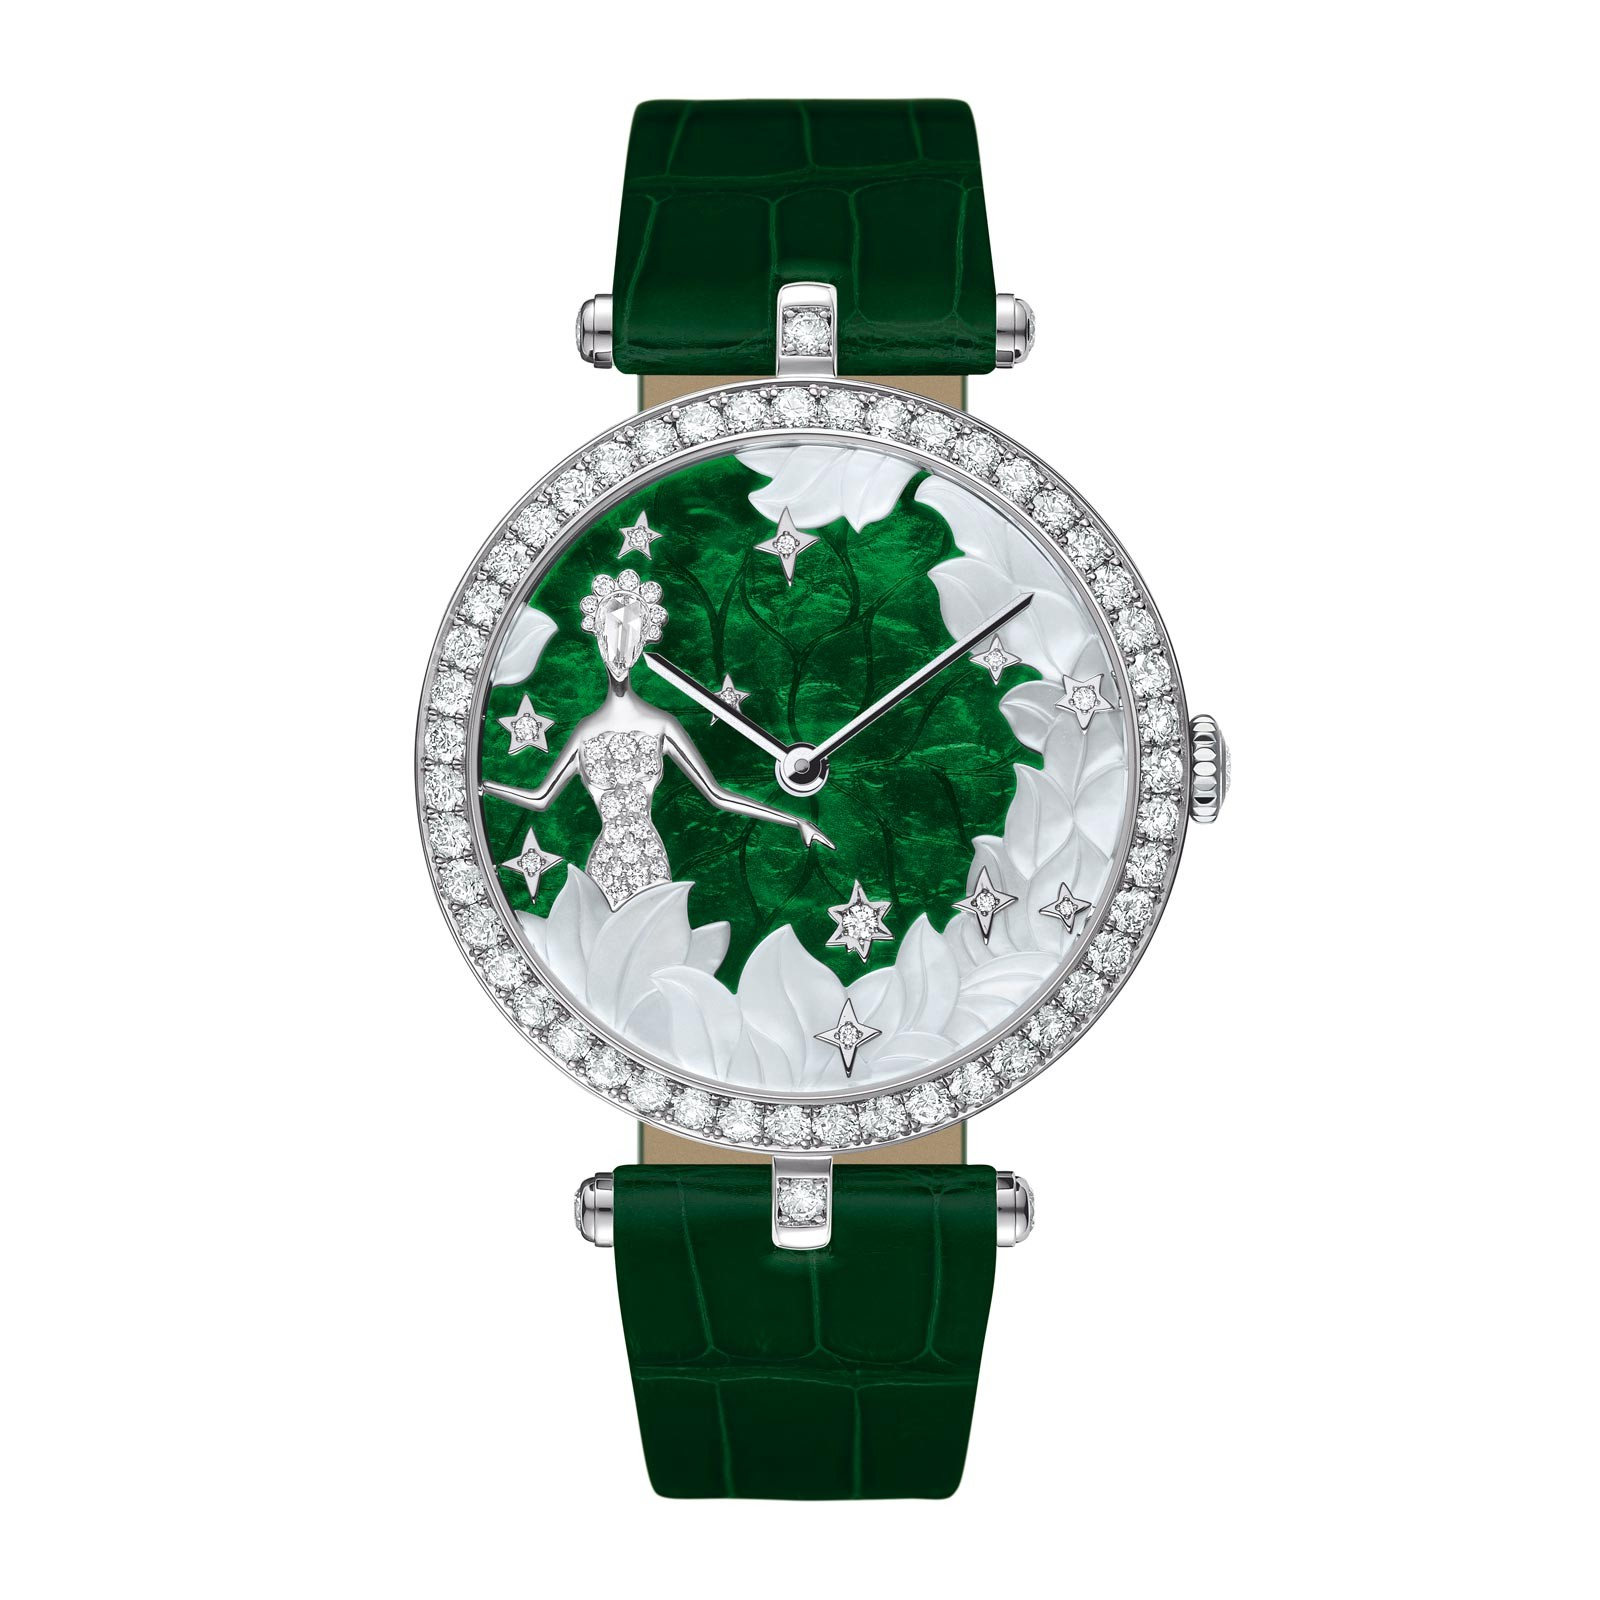 montre van cleef and arpels lady arpels zodiac virgo montre femmes 15 07 2018. Black Bedroom Furniture Sets. Home Design Ideas